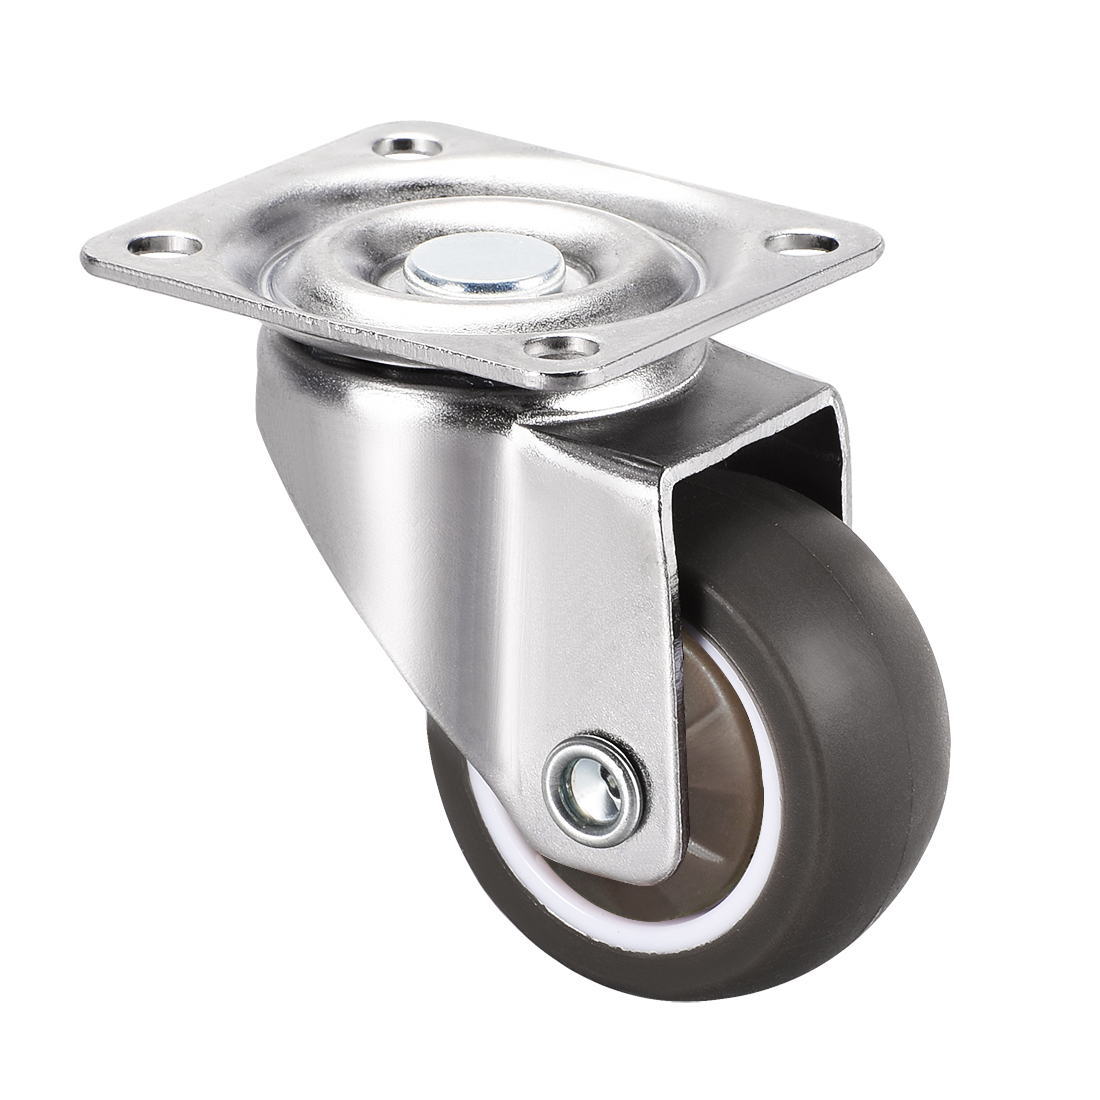 Swivel Caster Wheels 1 inch Dia TPR Caster Top Plate 22lb Capacity